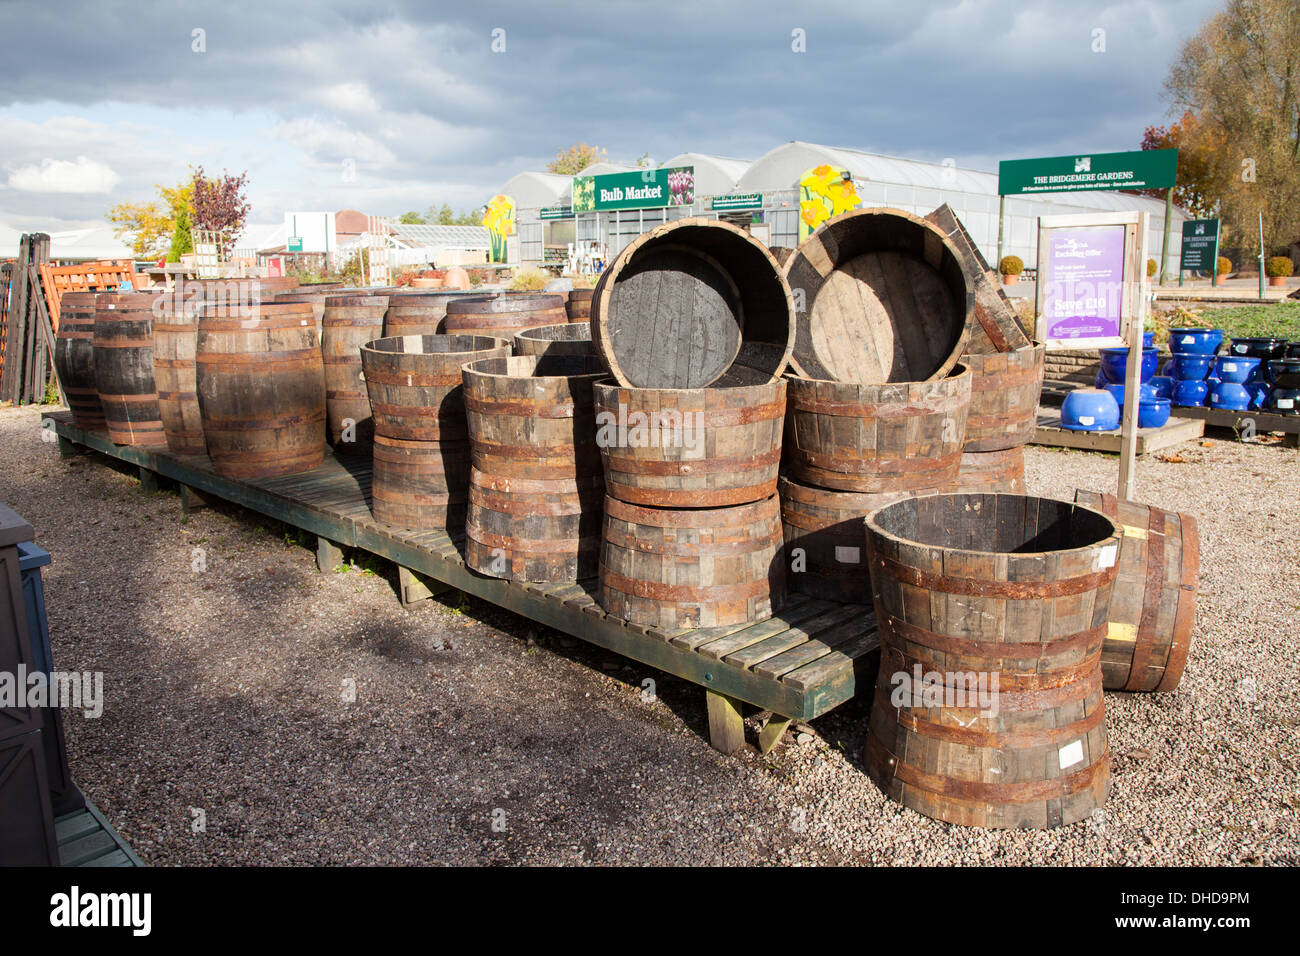 Wooden tubs and barrels for sale at Bridgemere Nursery and Garden ...